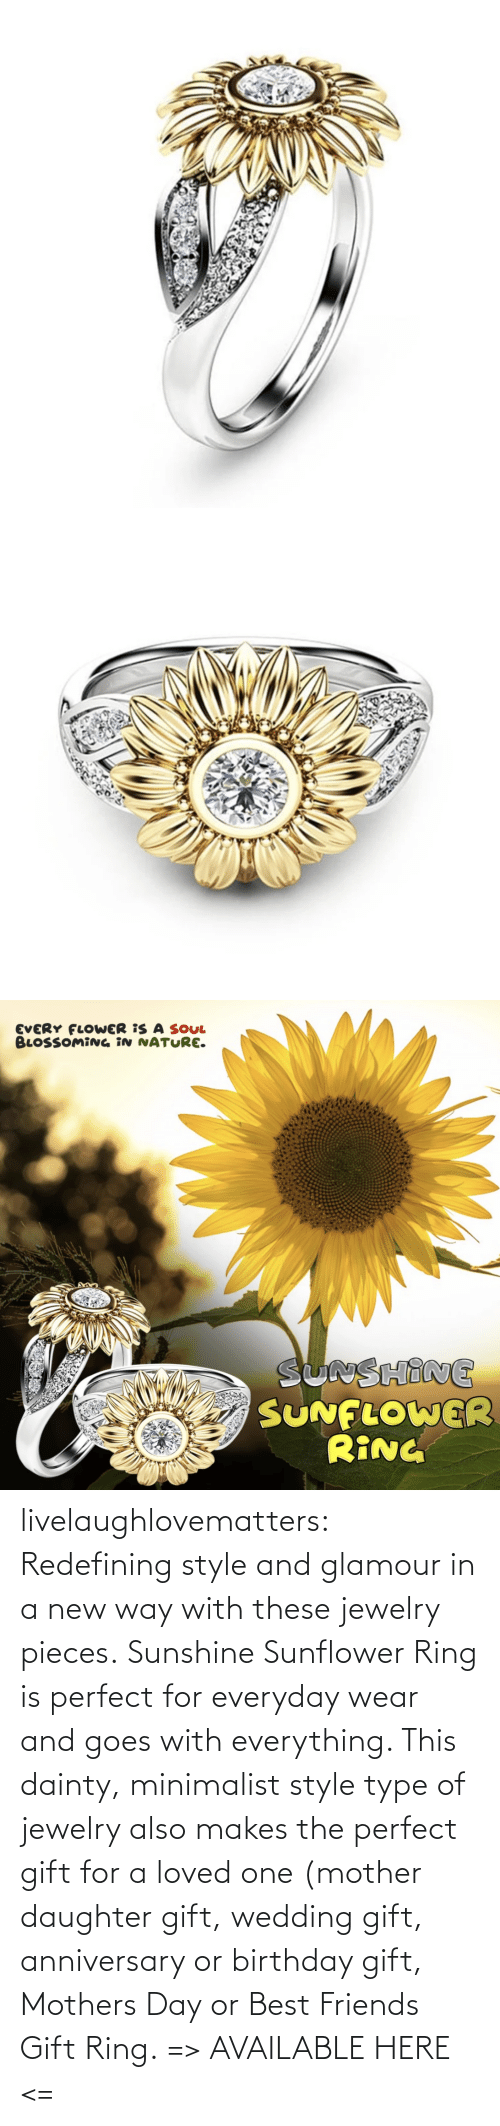 ring: livelaughlovematters: Redefining style and glamour in a new way with these jewelry pieces. Sunshine Sunflower Ring is perfect for everyday wear and goes with everything. This dainty, minimalist style type of jewelry also makes the perfect gift for a loved one (mother daughter gift, wedding gift, anniversary or birthday gift, Mothers Day or Best Friends Gift Ring. => AVAILABLE HERE <=